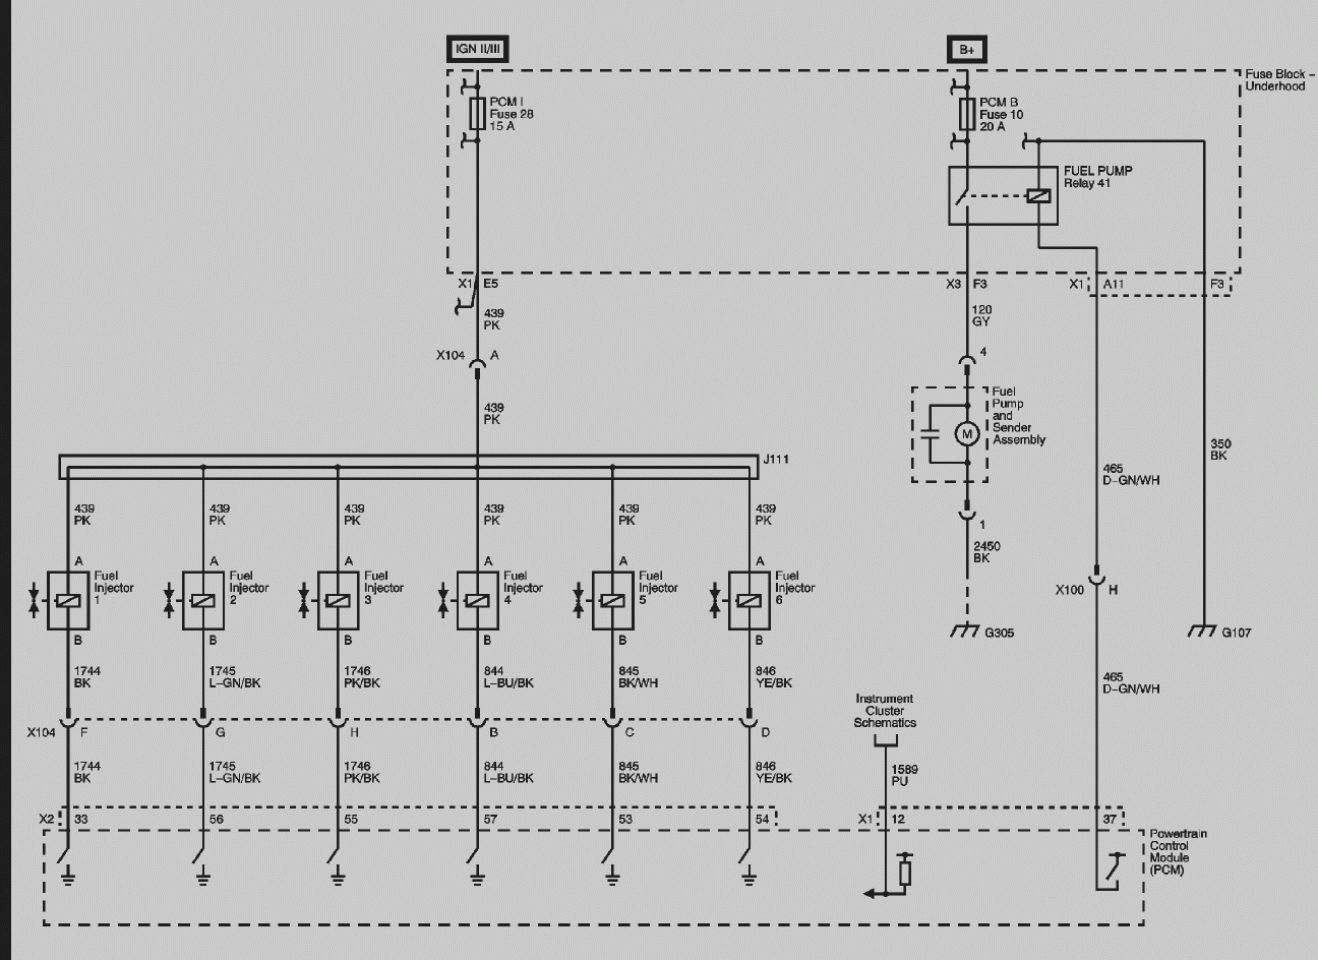 1992 Ford Ranger 3 0 Fuel Wiring Diagram Ford Ranger Fuel Injection Electrical Circuit Diagram